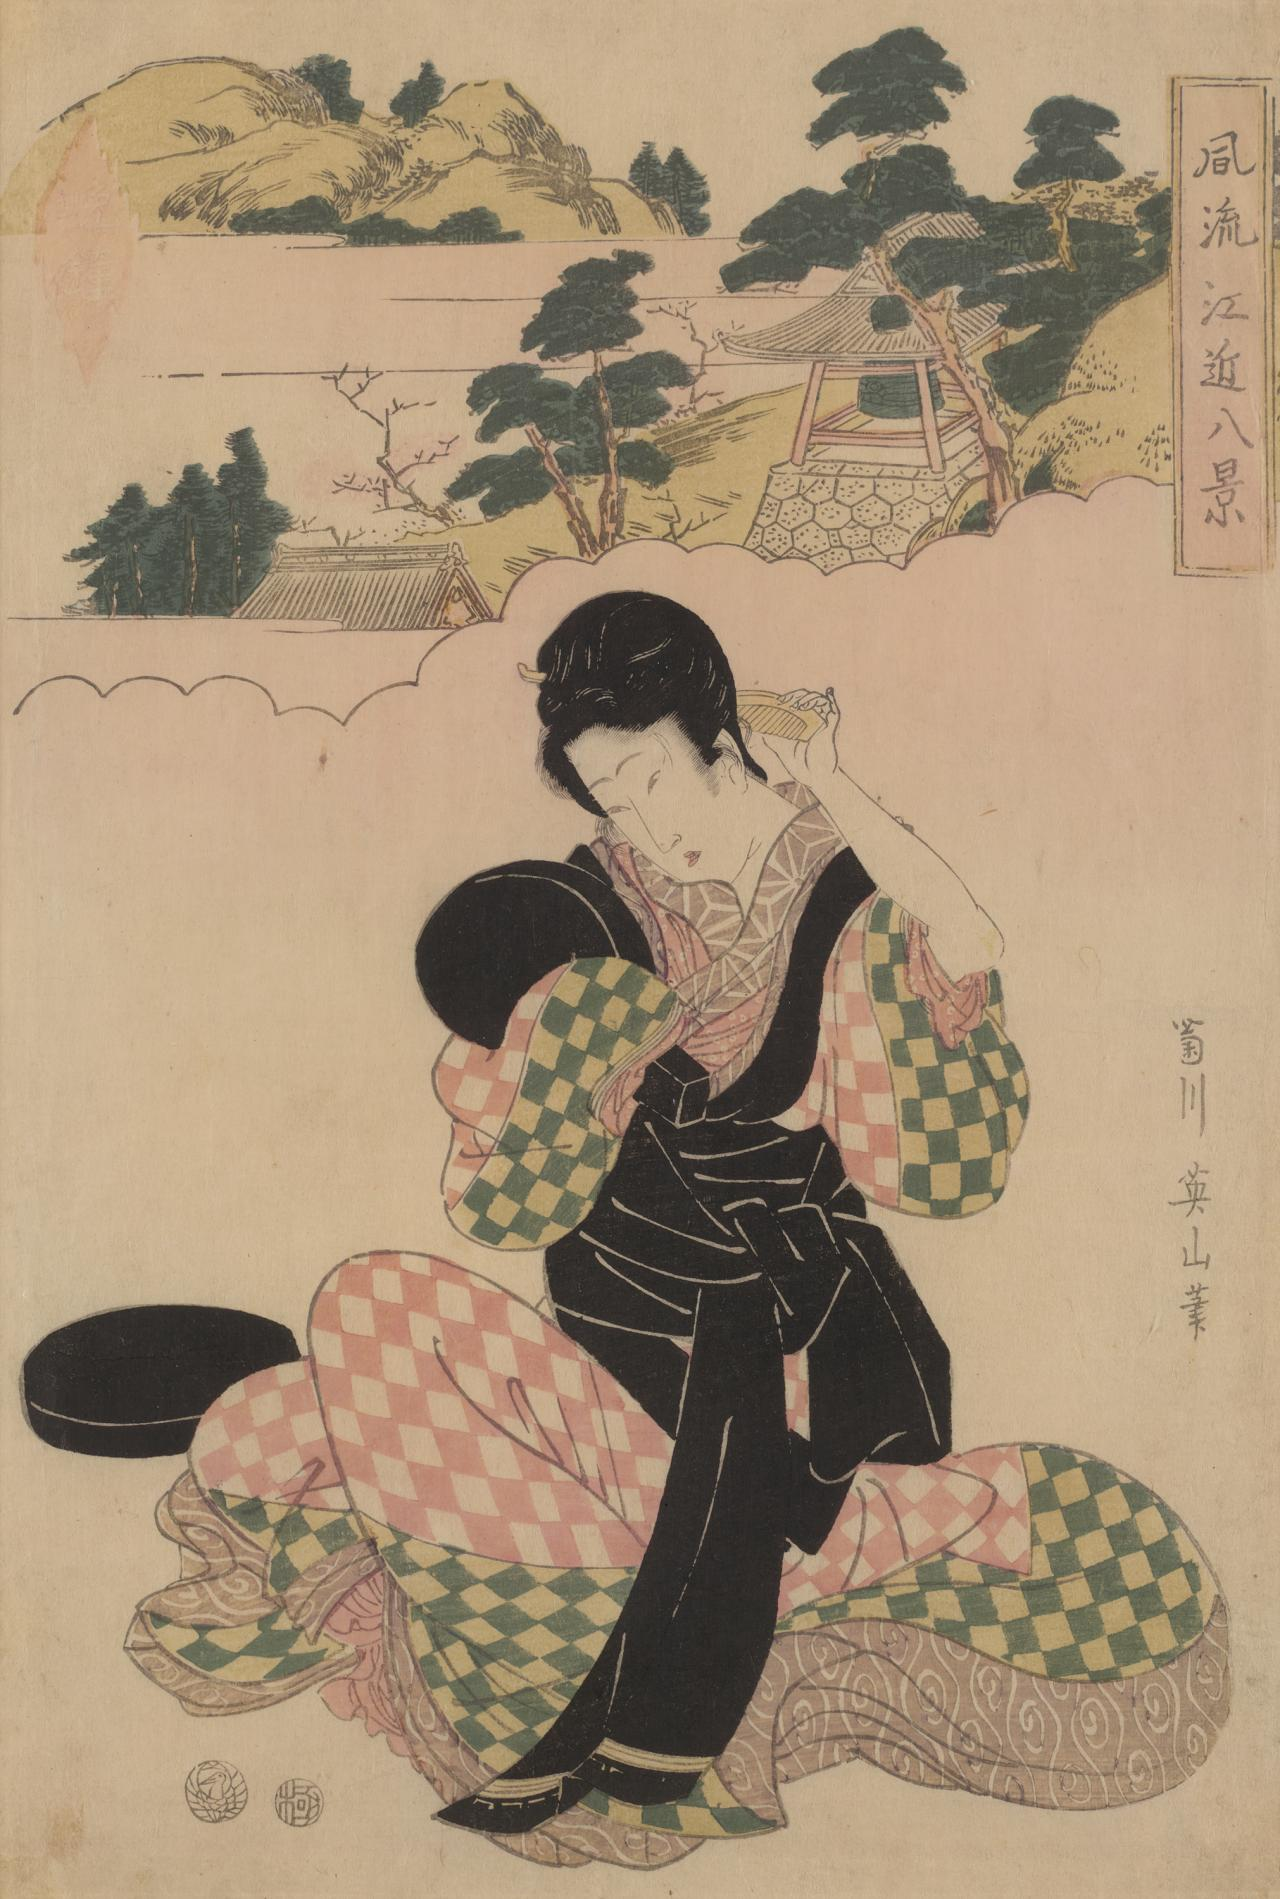 Beauties at eight views of Omi